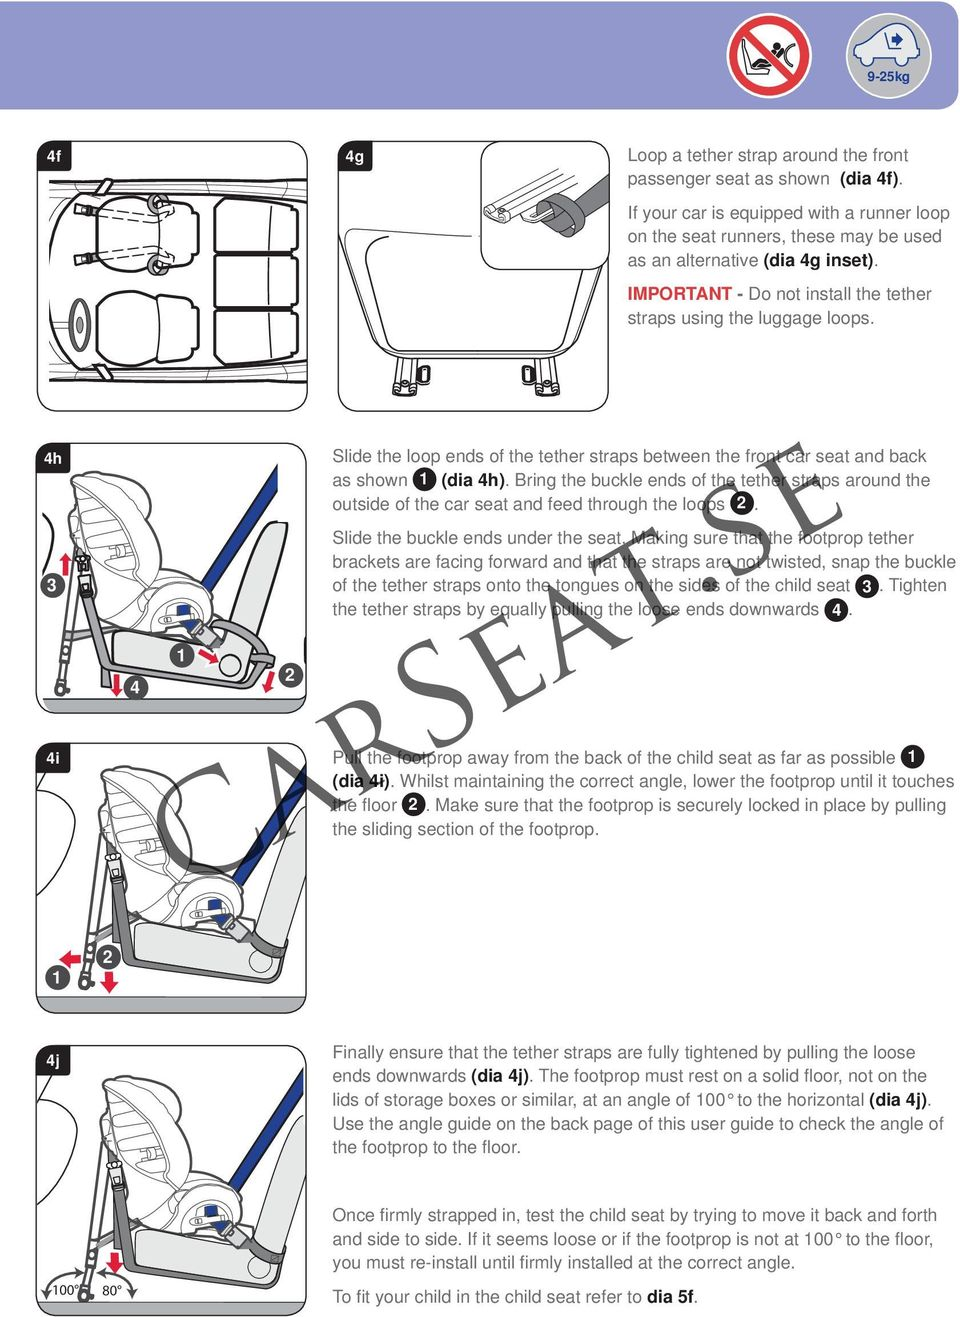 Bring the buckle ends of the tether straps around the outside of the car seat and feed through the loops. Slide the buckle ends under the seat.